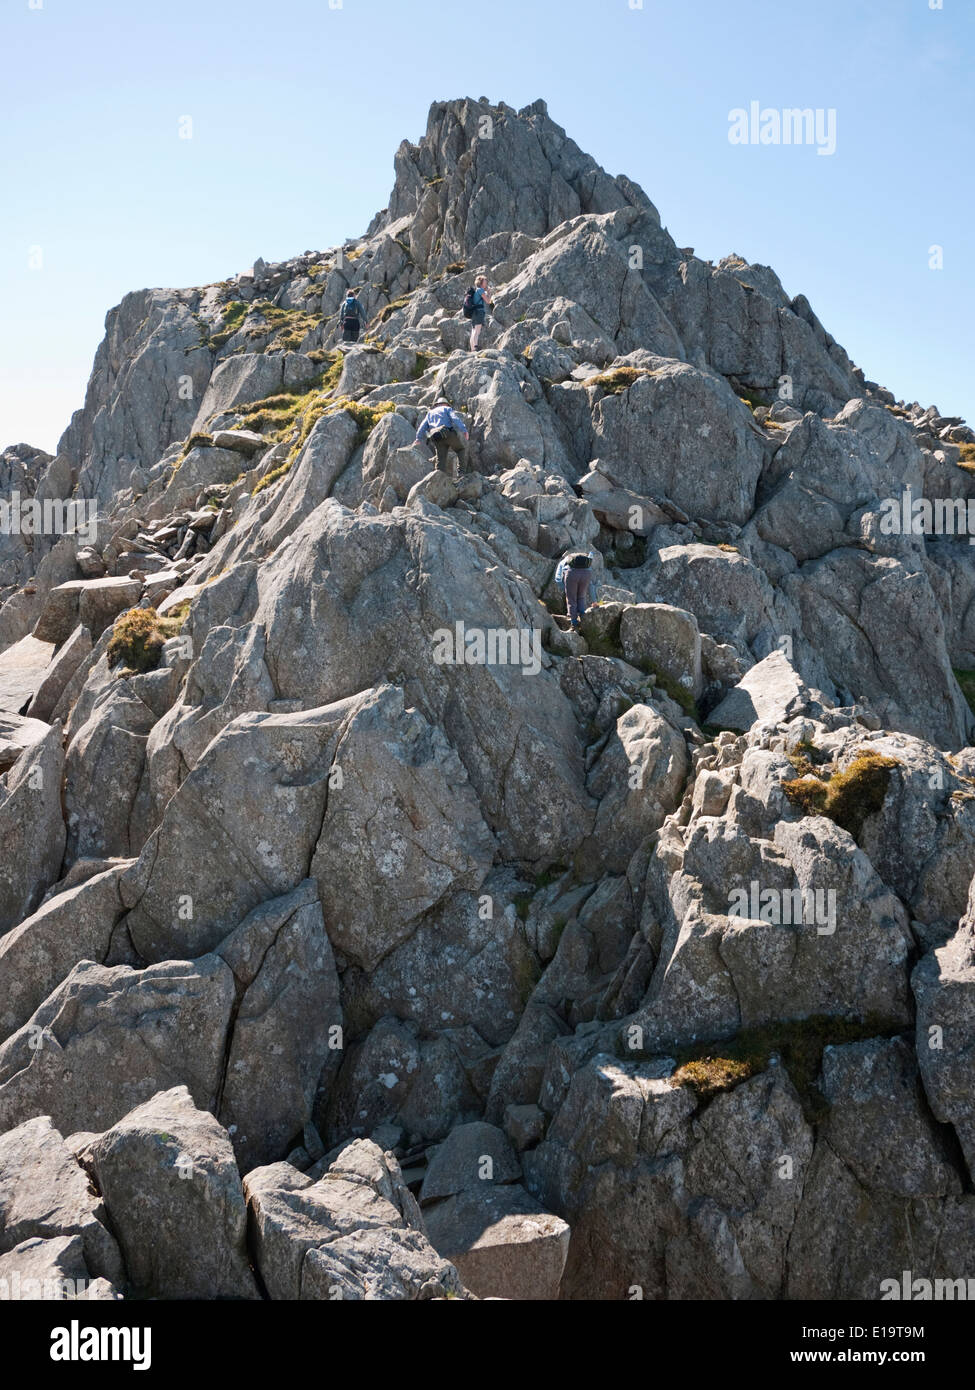 Scramblers ascending from The Notch towards the North Tower on Tryfan's North Ridge - a popular scramble in Snowdonia - Stock Image